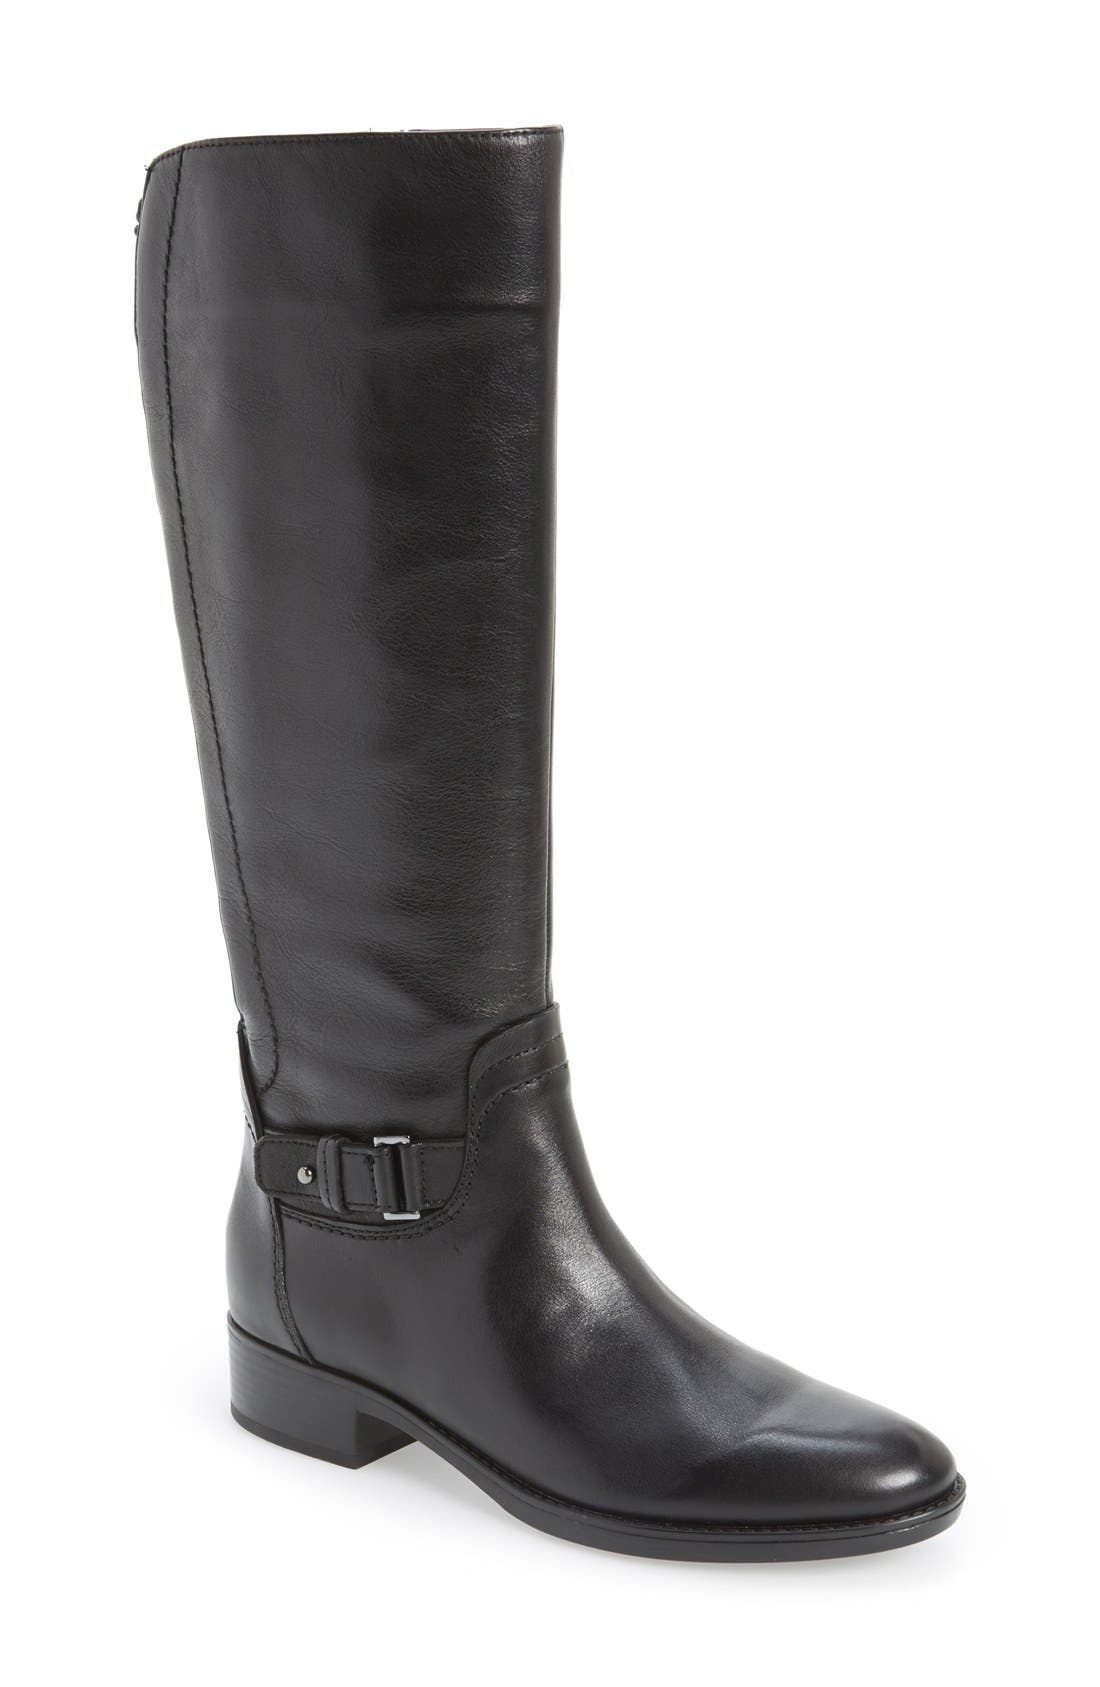 GEOX 'Felicity' Adjustable Shaft Tall Riding Boot